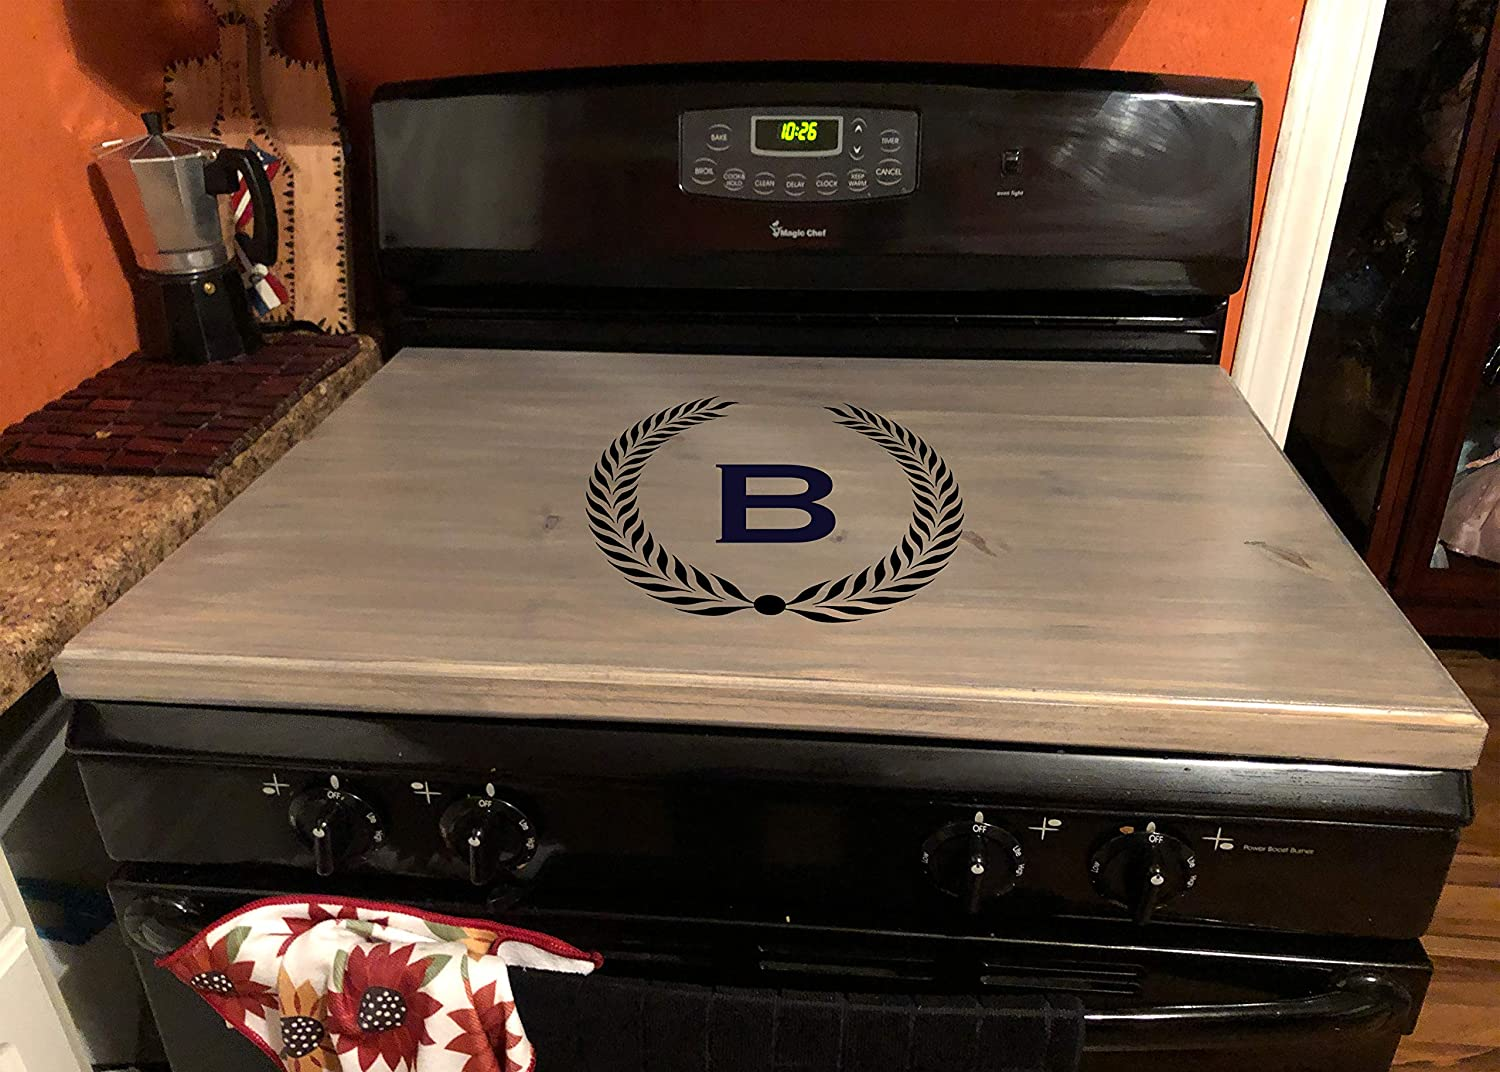 latinos r us Stove Top Cover, Custom Wooden Stove Cover Personalized (Red Mahogany)